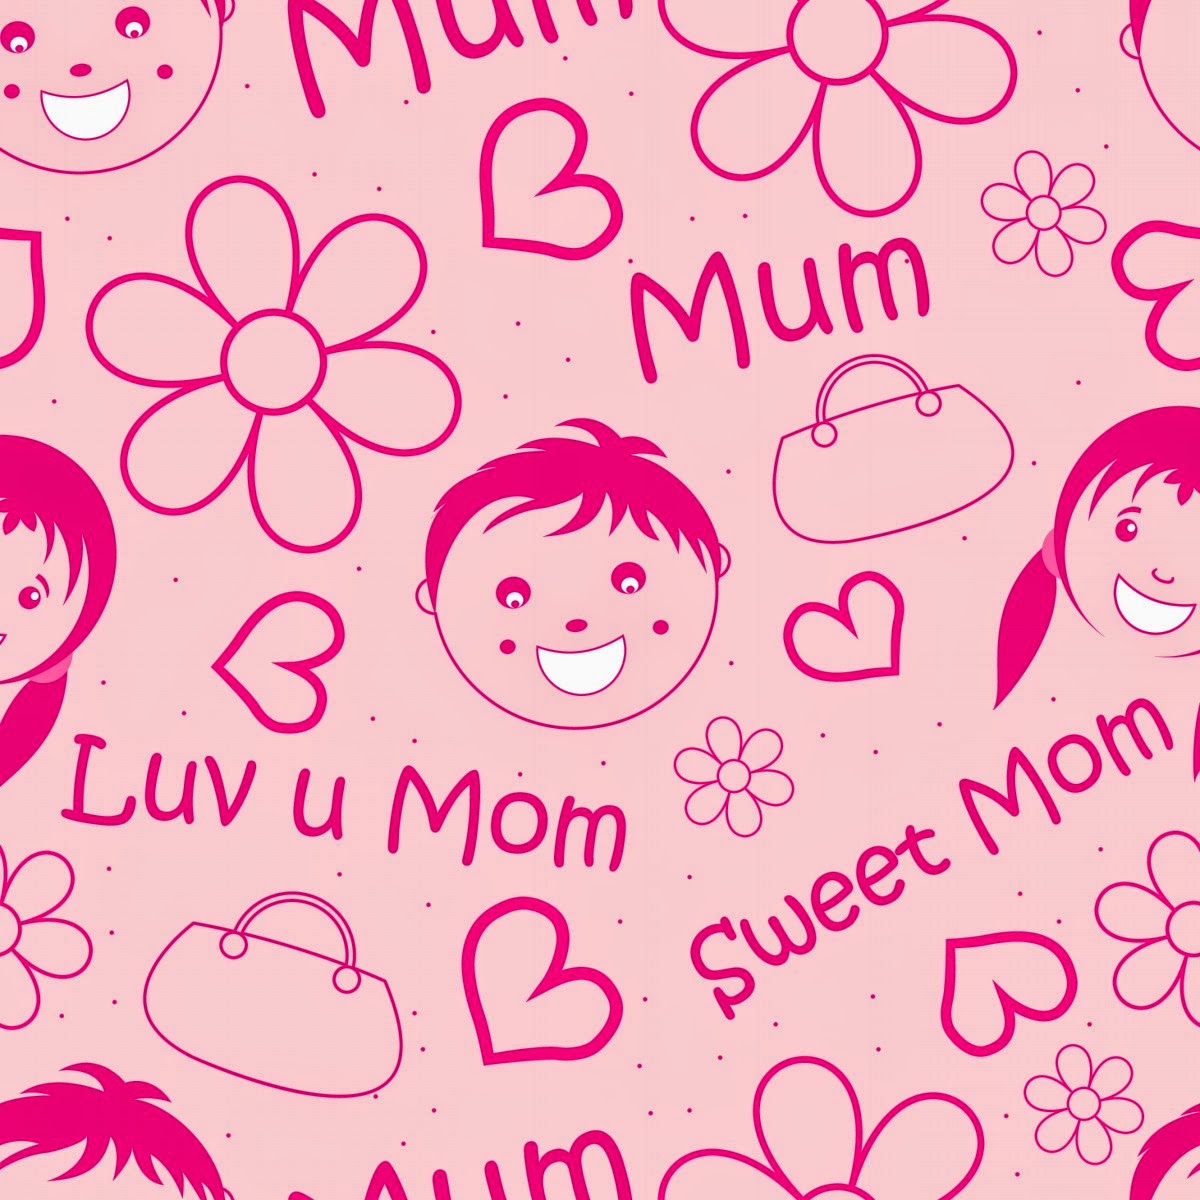 Keep Calm And Love You Mom Dad Apps Directories 1200x1200